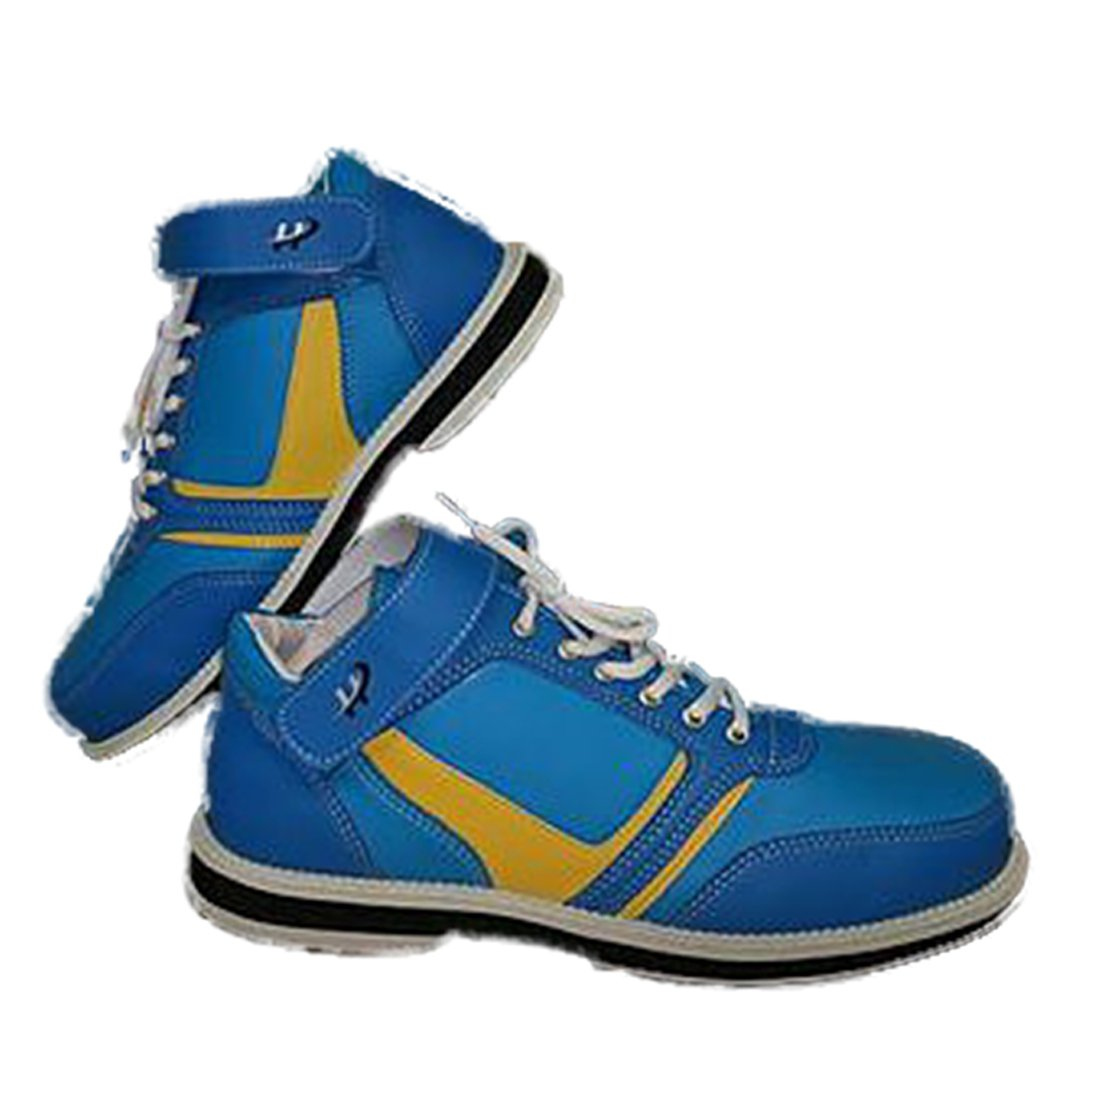 Mens High Top Bowling Shoe For Right Handed Bowler, Rubber Bottom, Foam Padded Tounge & Collar, unique style - Blue and Yellow | Size 11